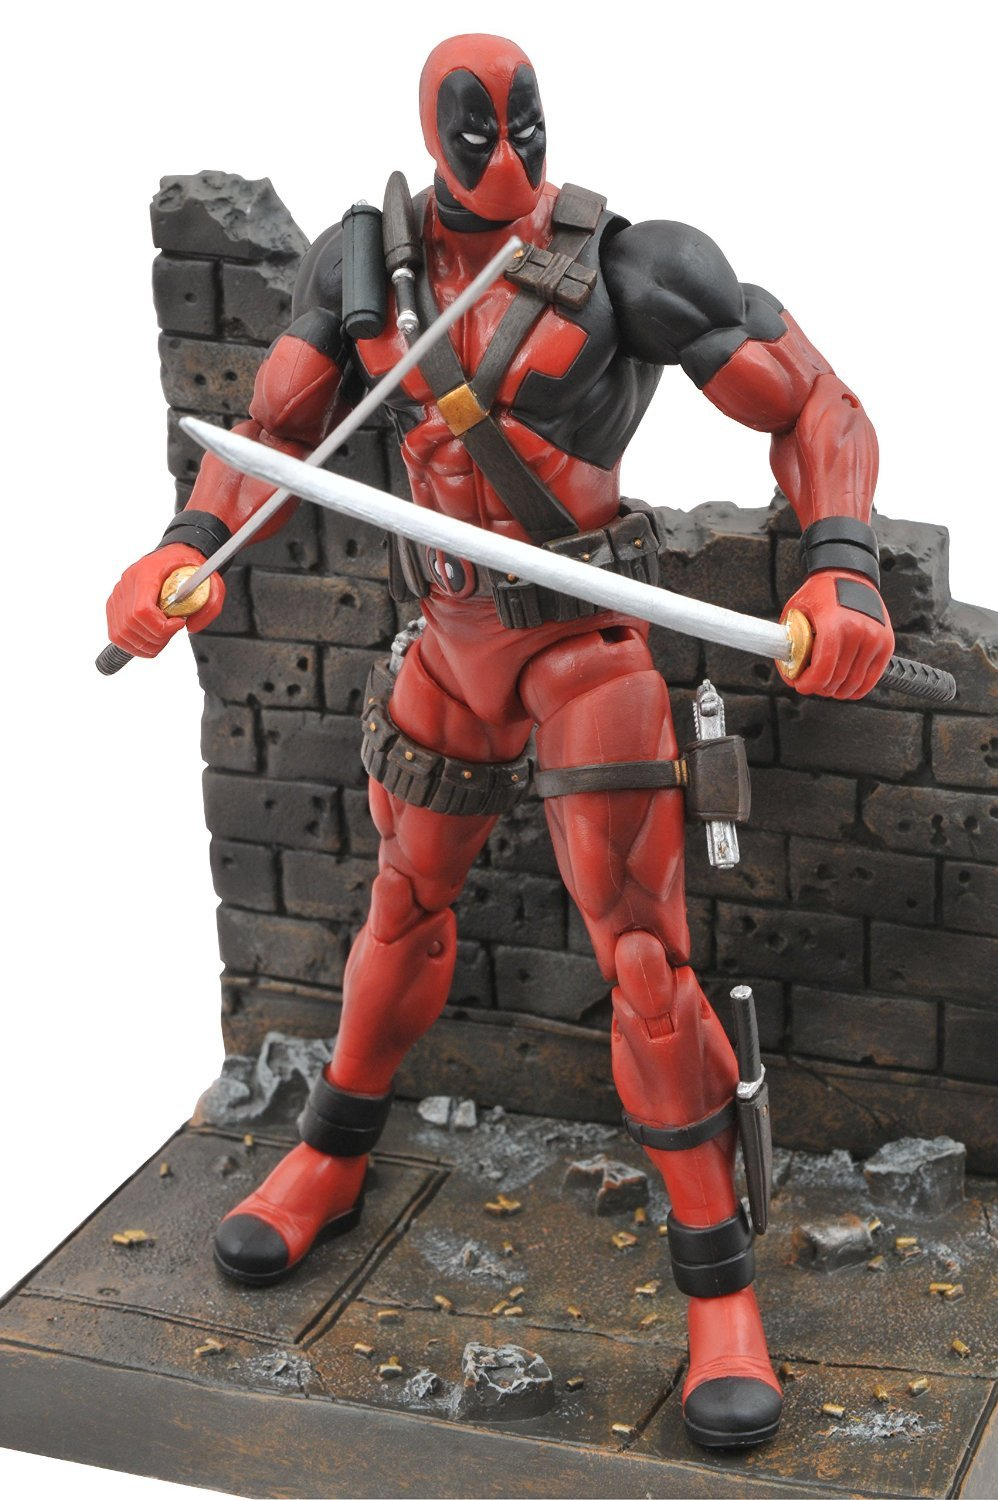 Марвел Селект фигурка Дэдпул — Marvel Select Deadpool Action Figure